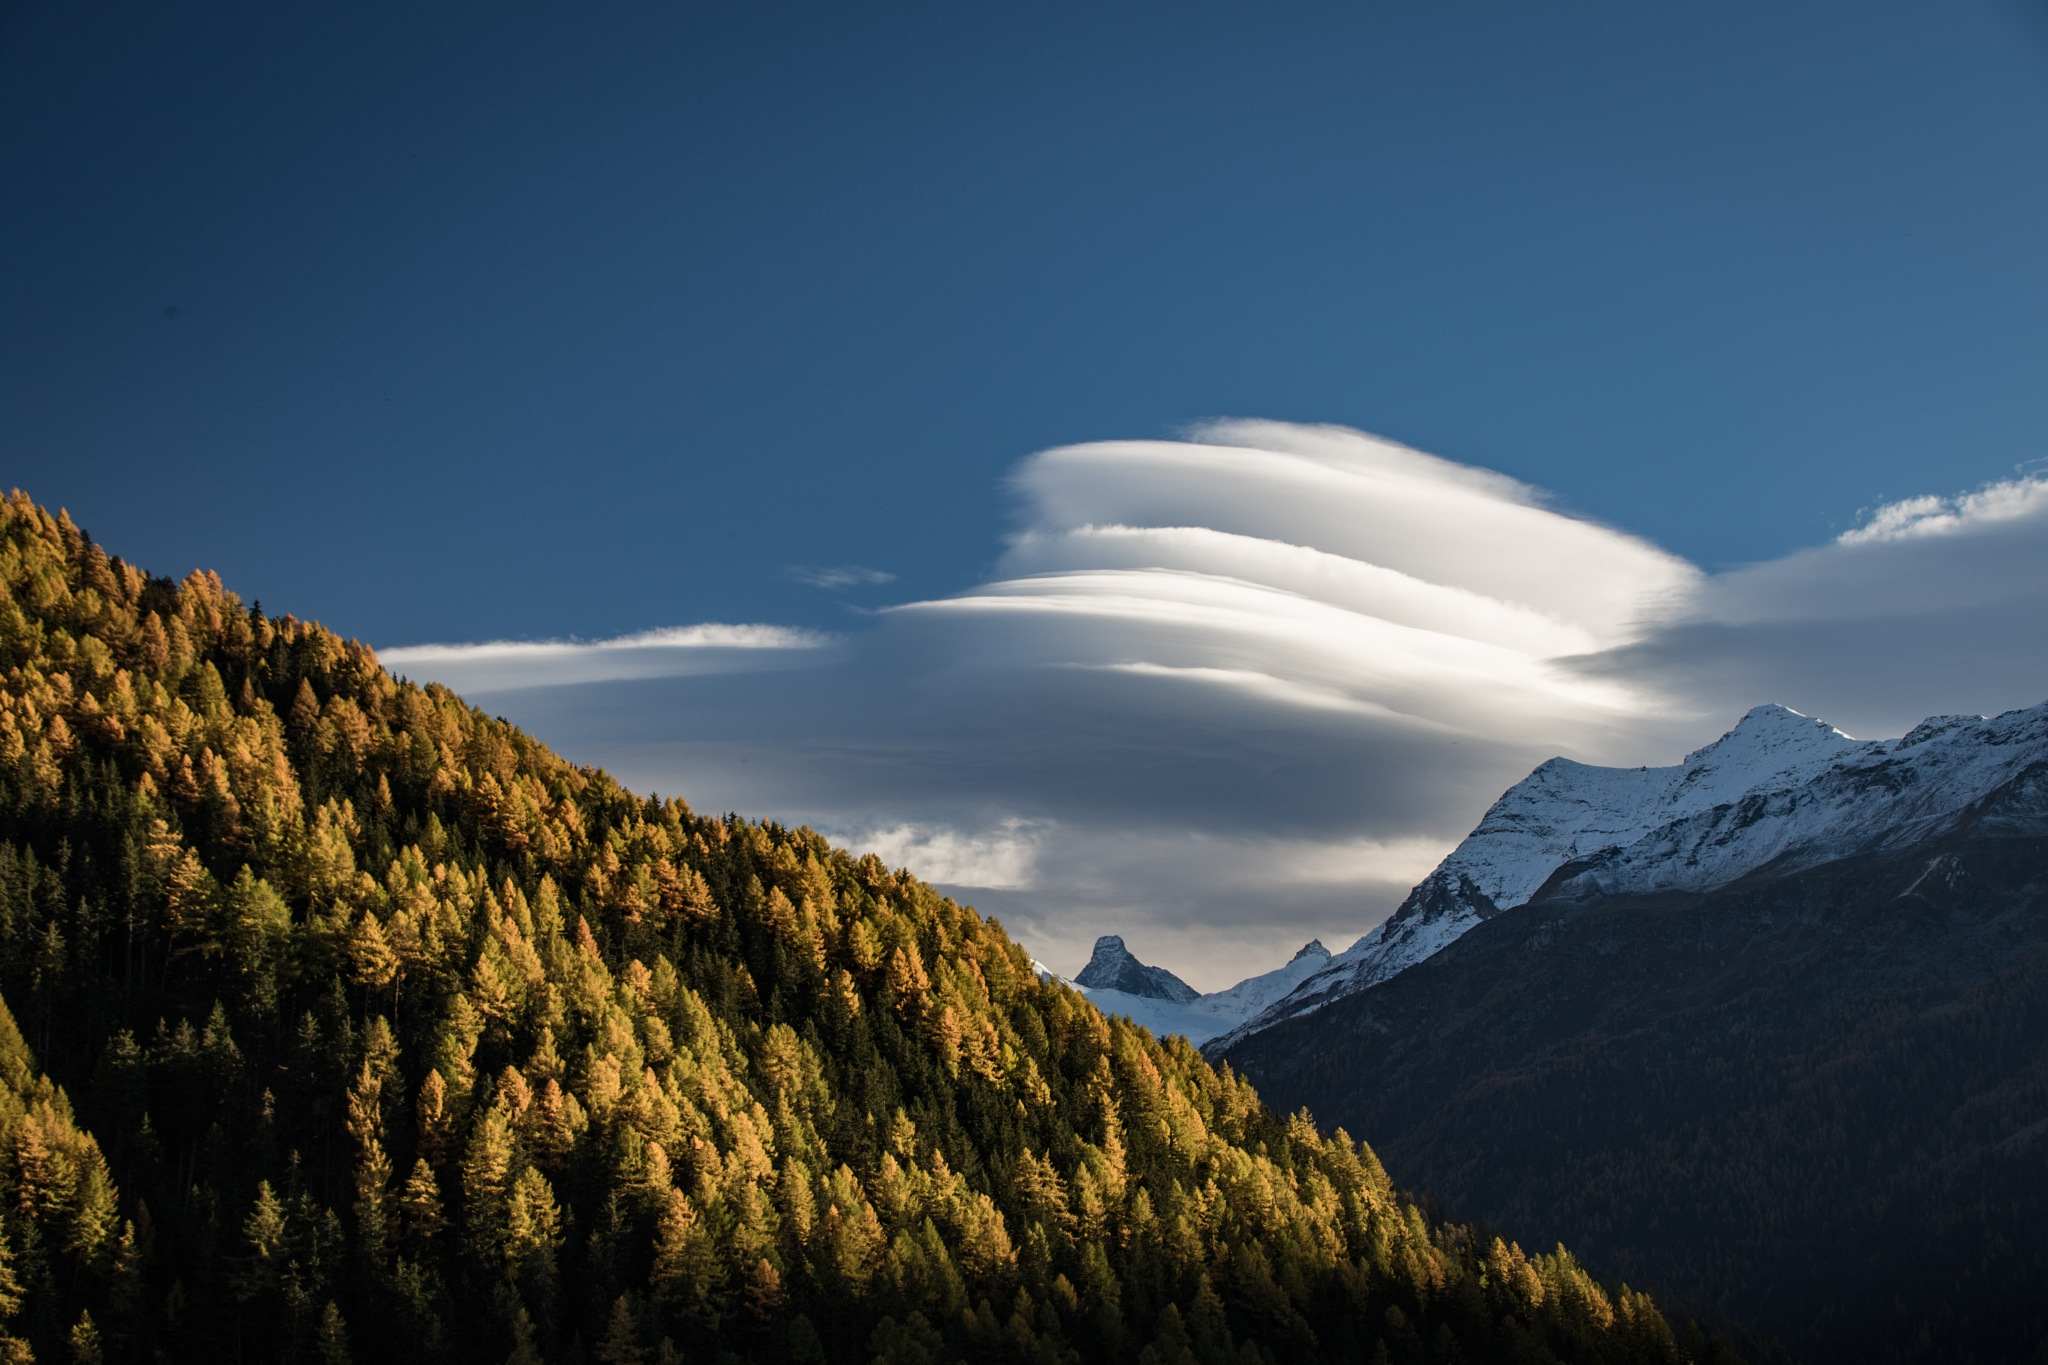 Lenticular cloud by Jean-Jacques Vallat